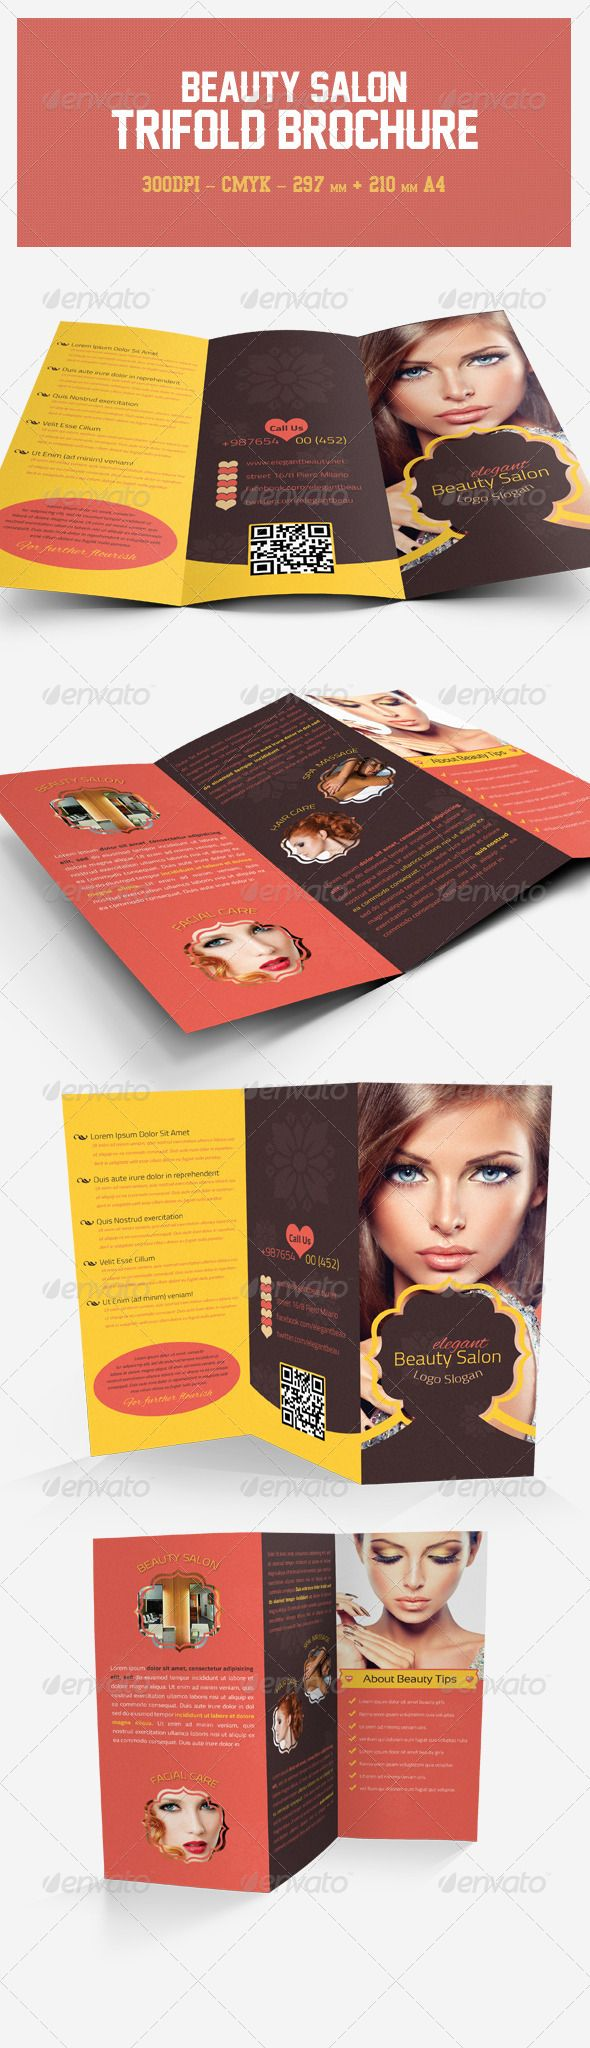 beauty brochure templates - 140 best images about fonts flyers more on pinterest